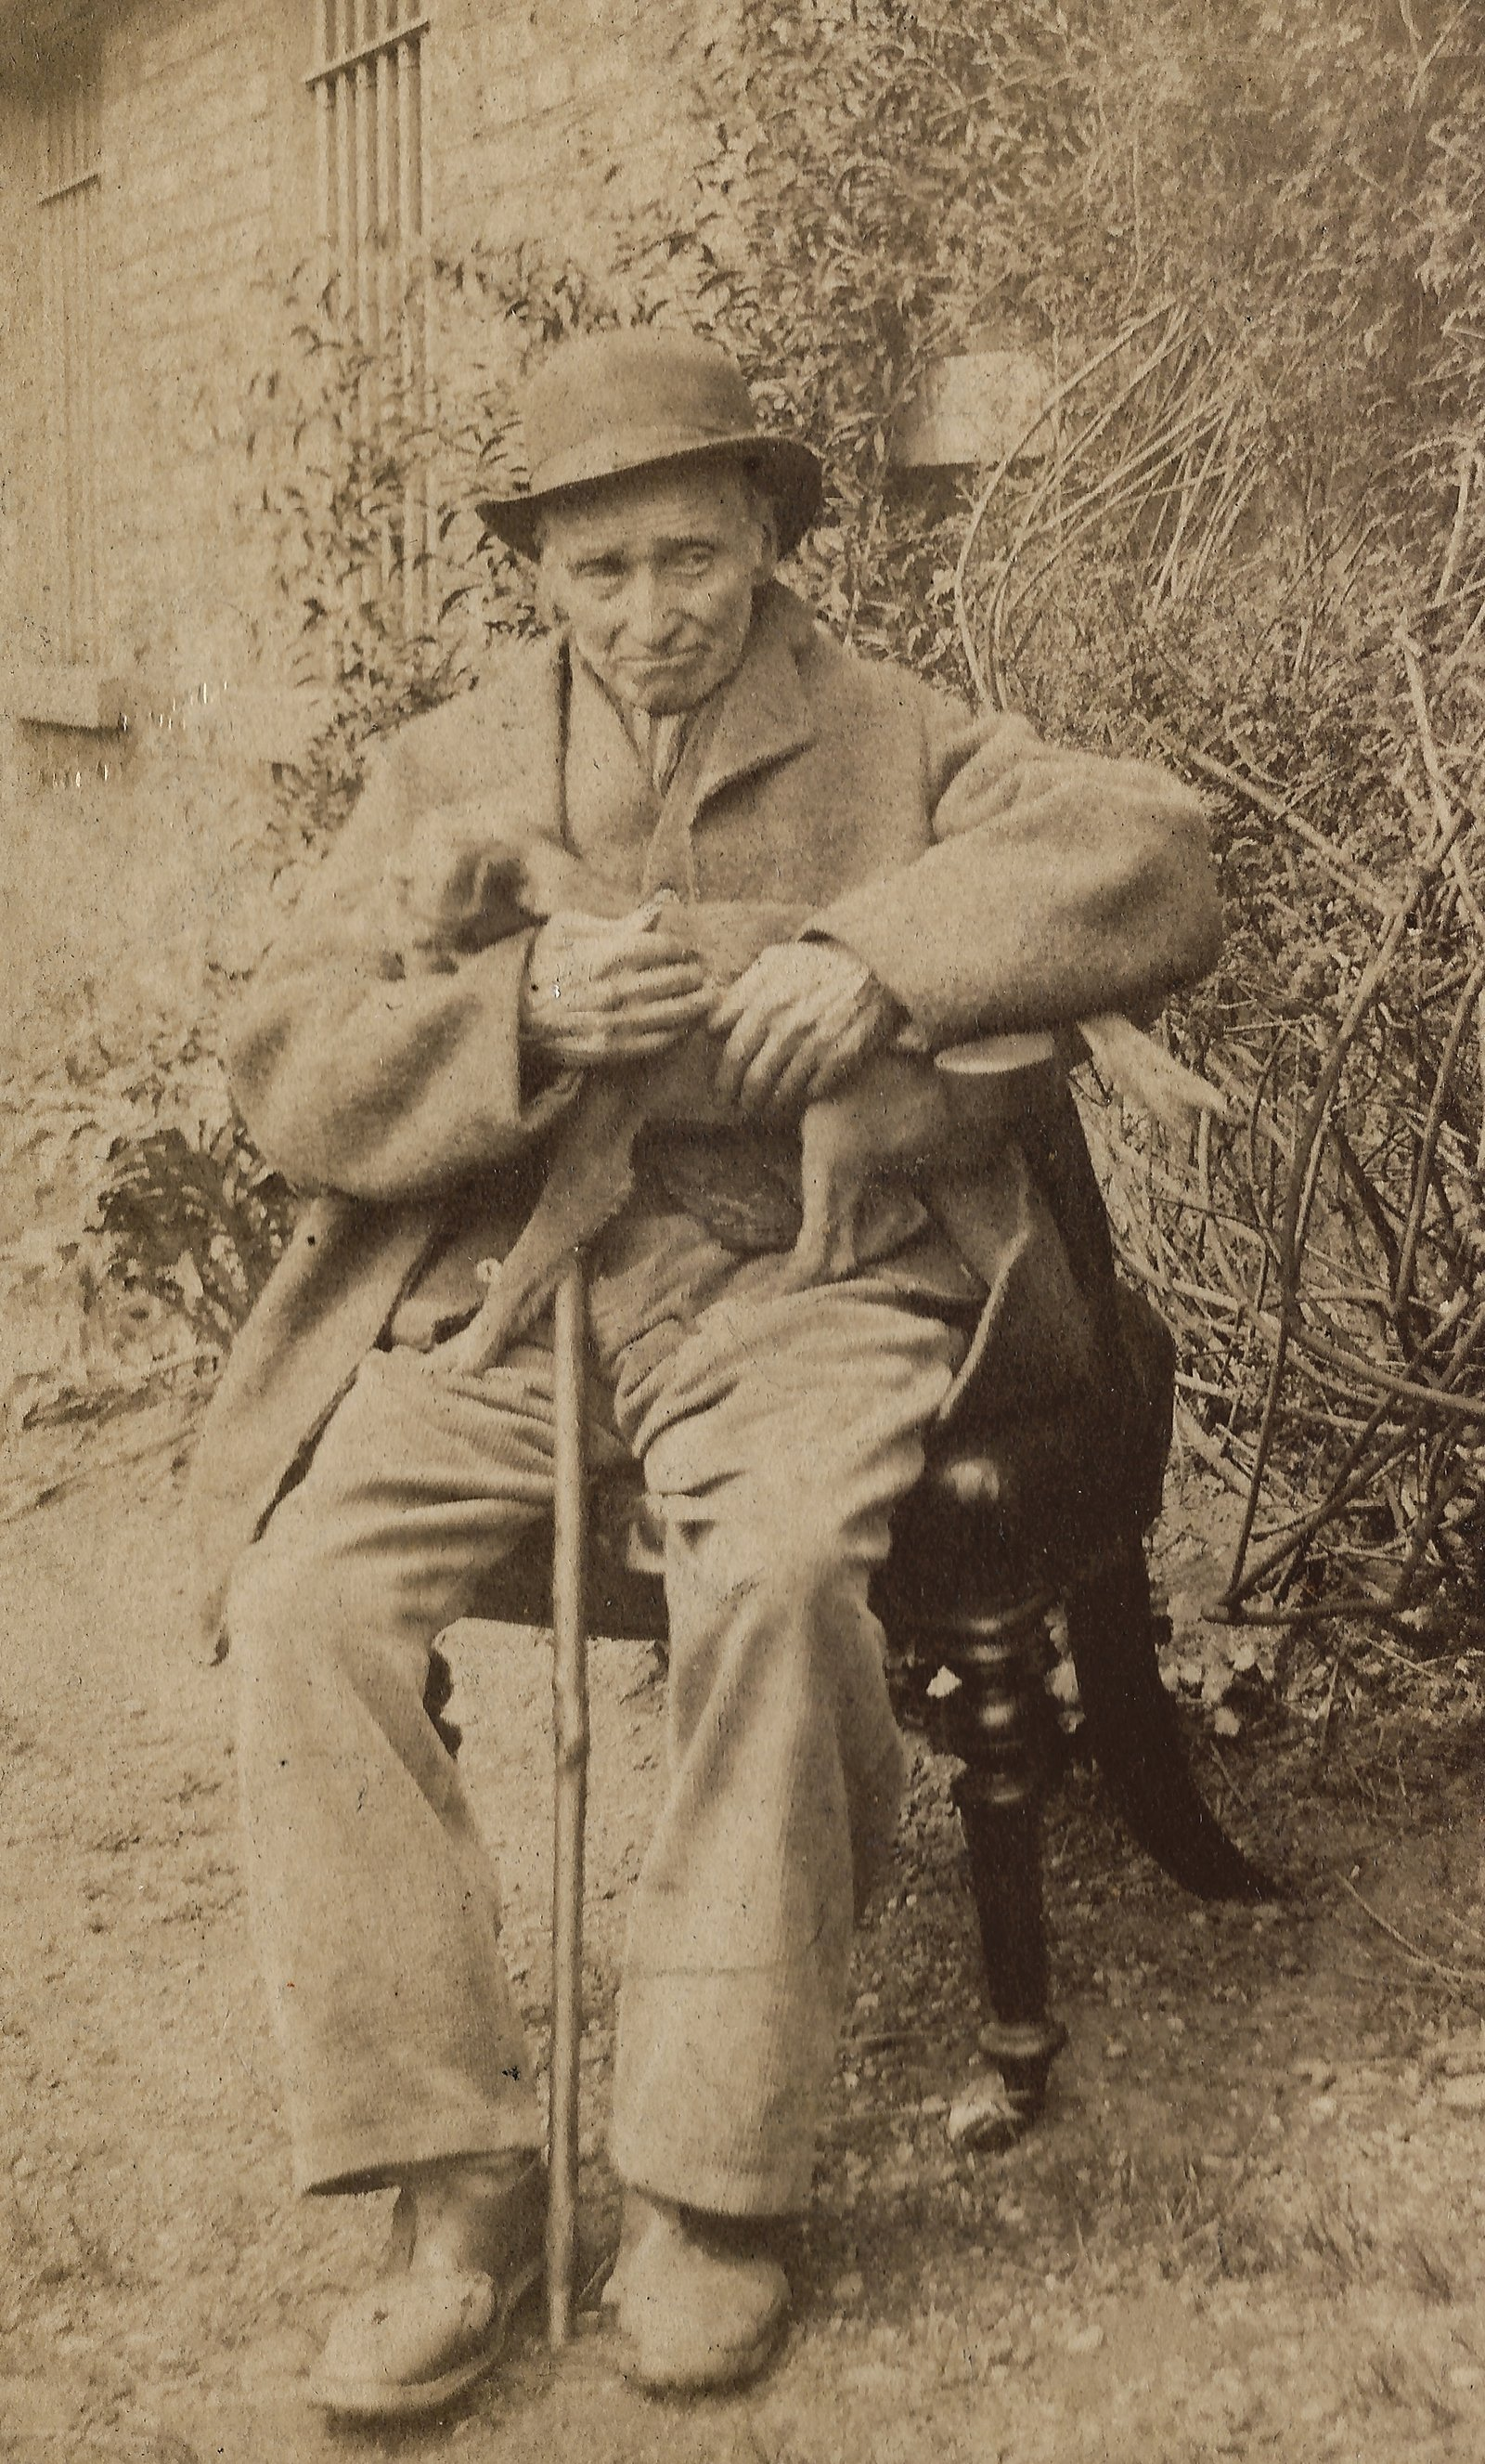 Image - Albumen portrait of James Conway seated outside with cane and hat.